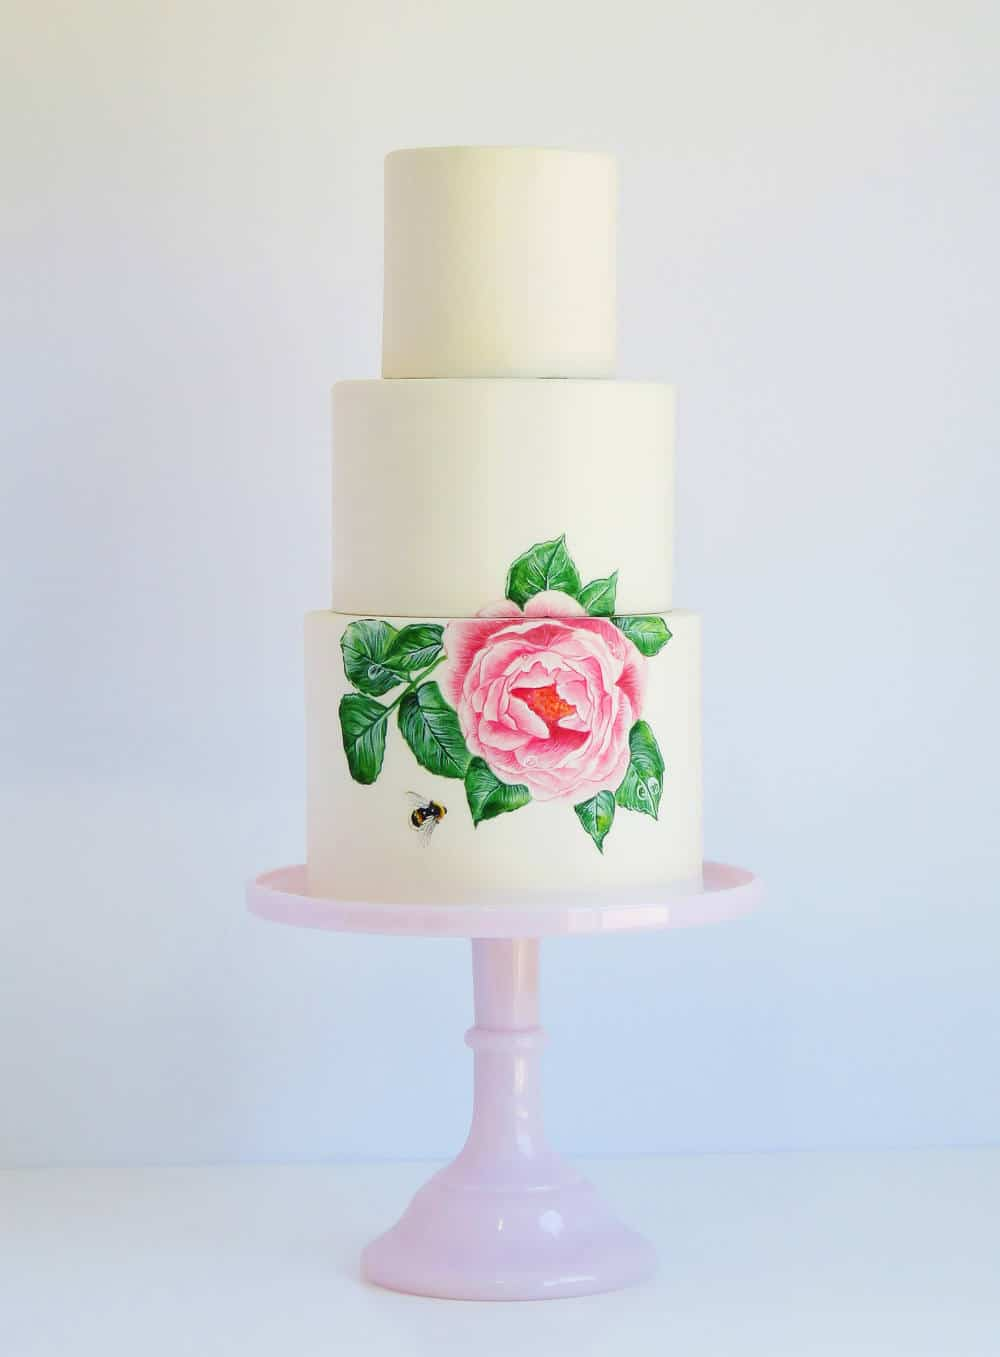 Wedding Cake Trends (2018) A Cake Collaboration | Sugar Geek Show